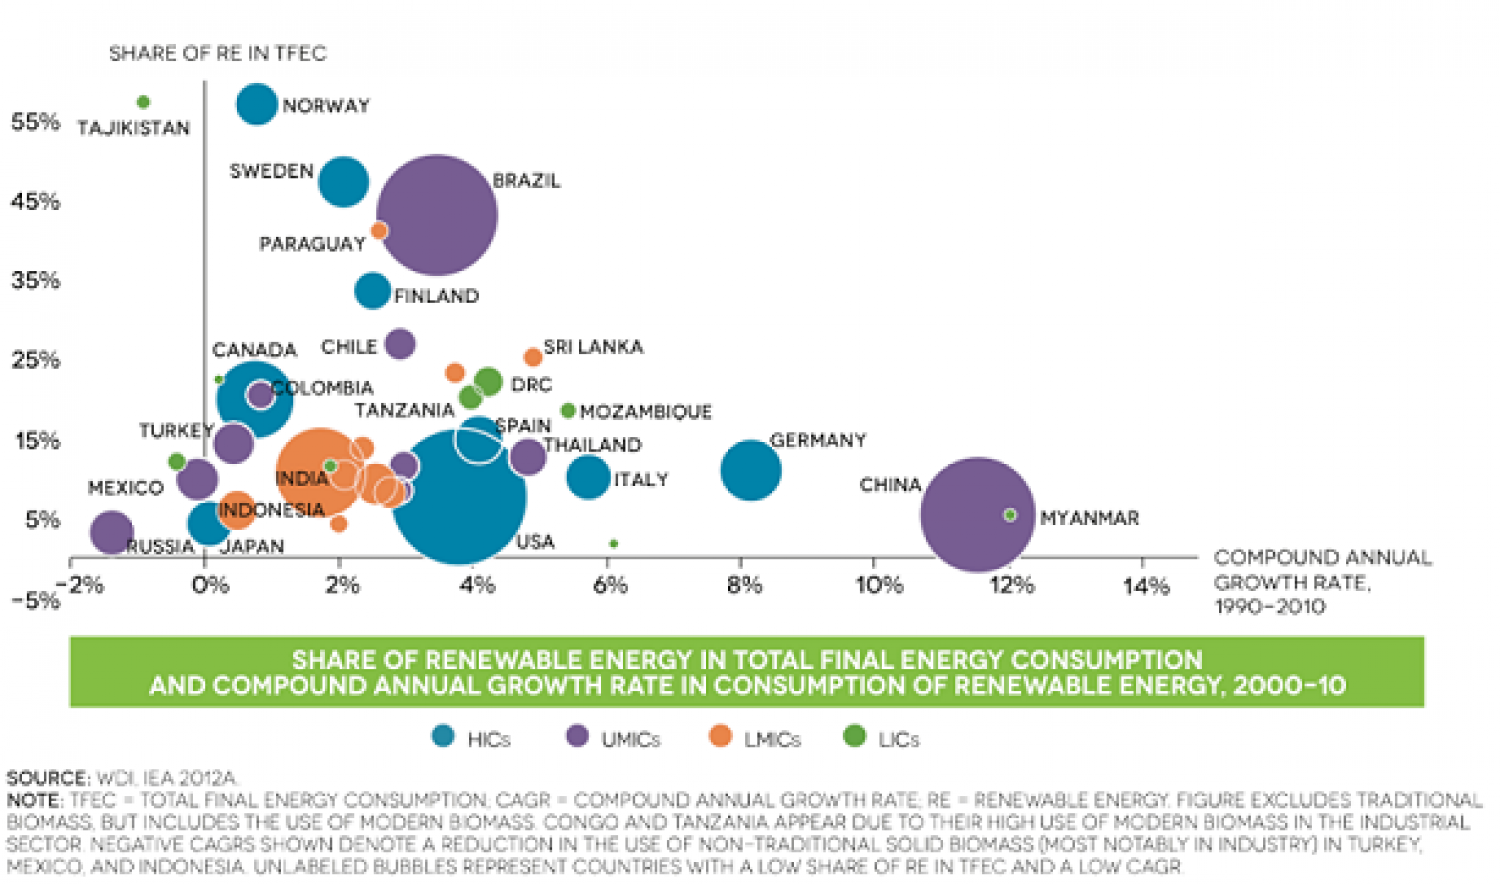 Share of Renewable Energy in total final energy consumption and compound annuam growth rate in consumption of RN, 2000-2010 Infographic